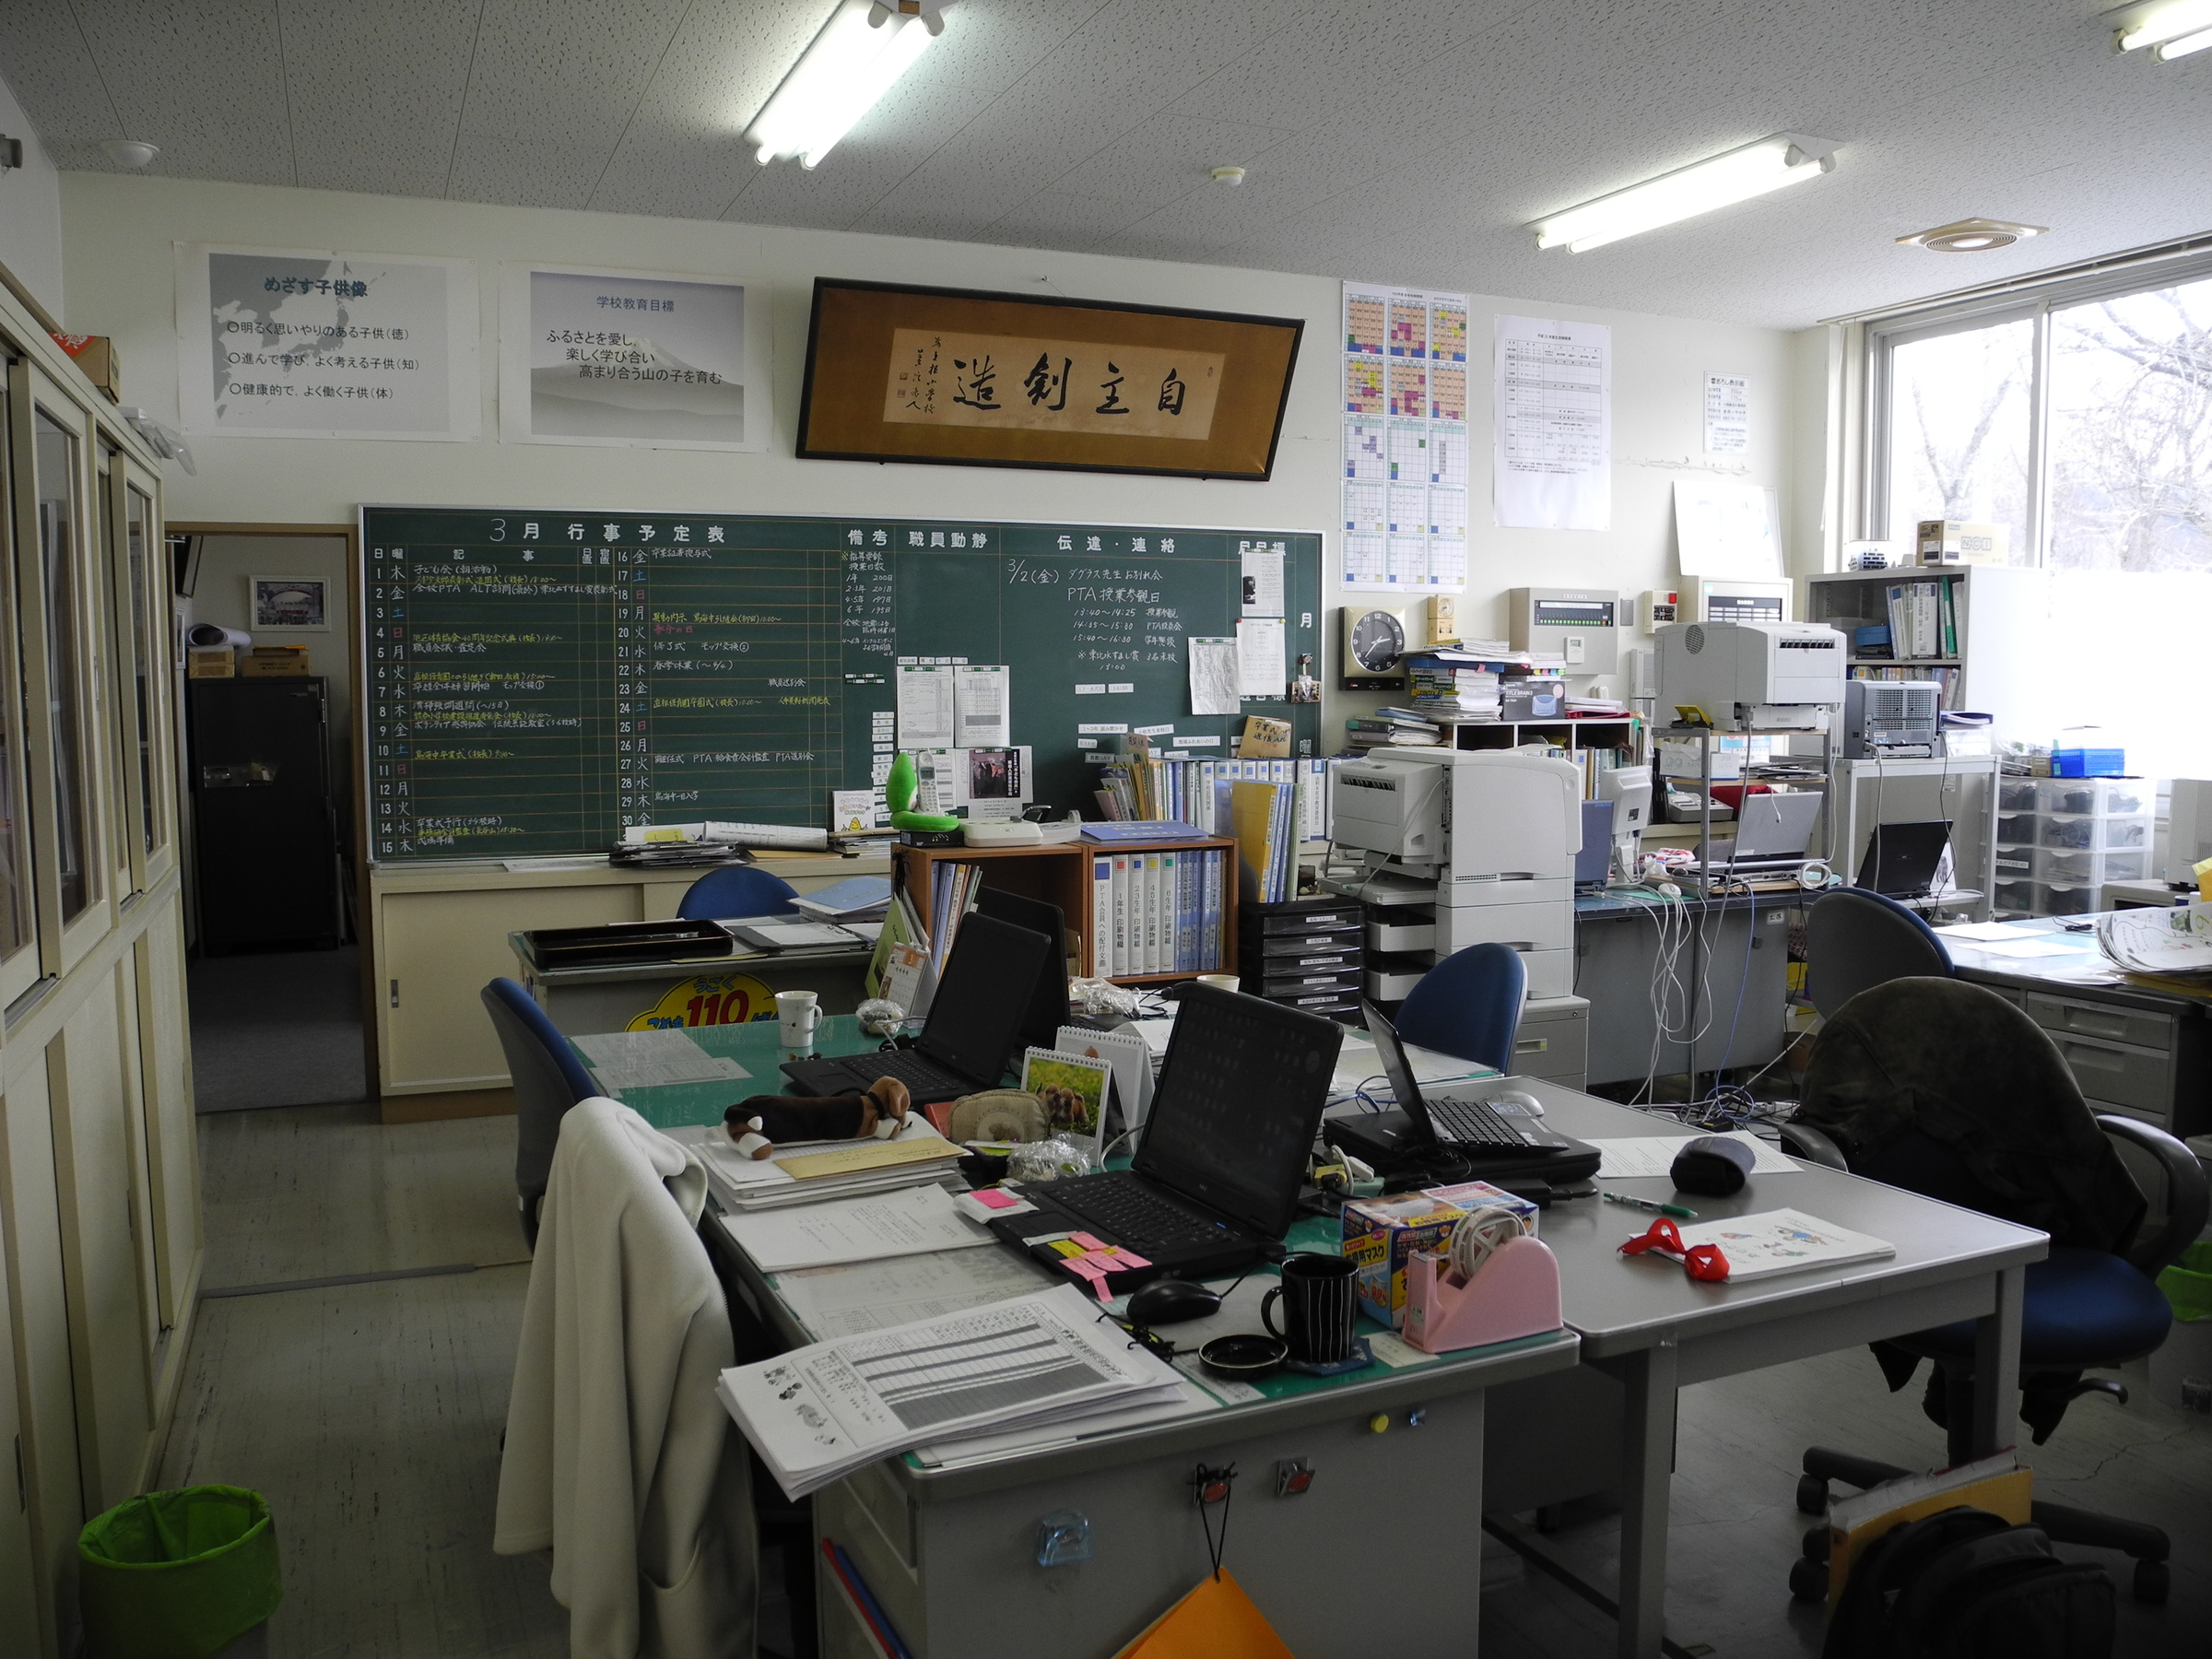 Elementary school staffroom, Japan